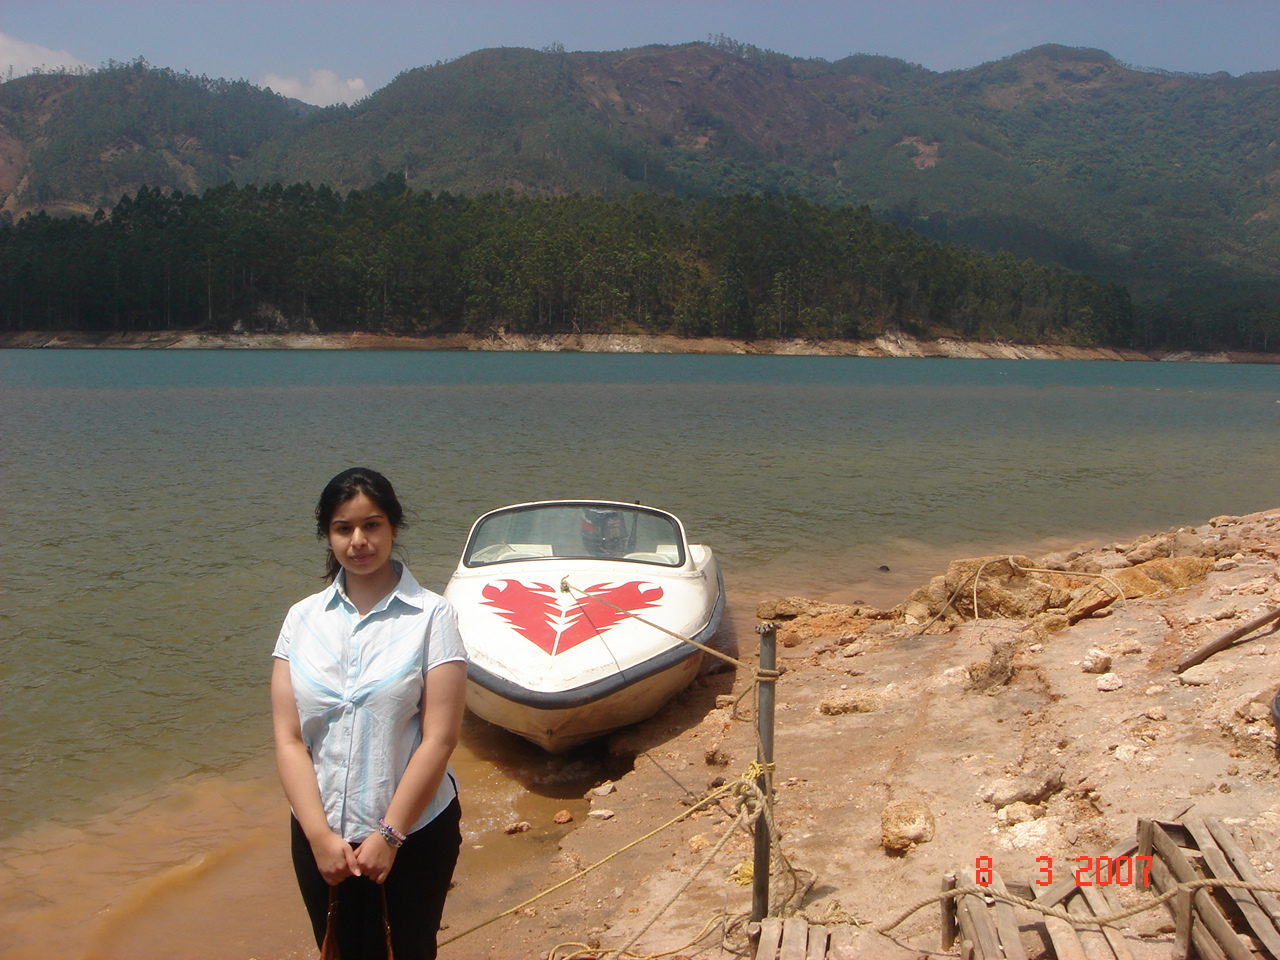 Speed Boat at Munnar Lake